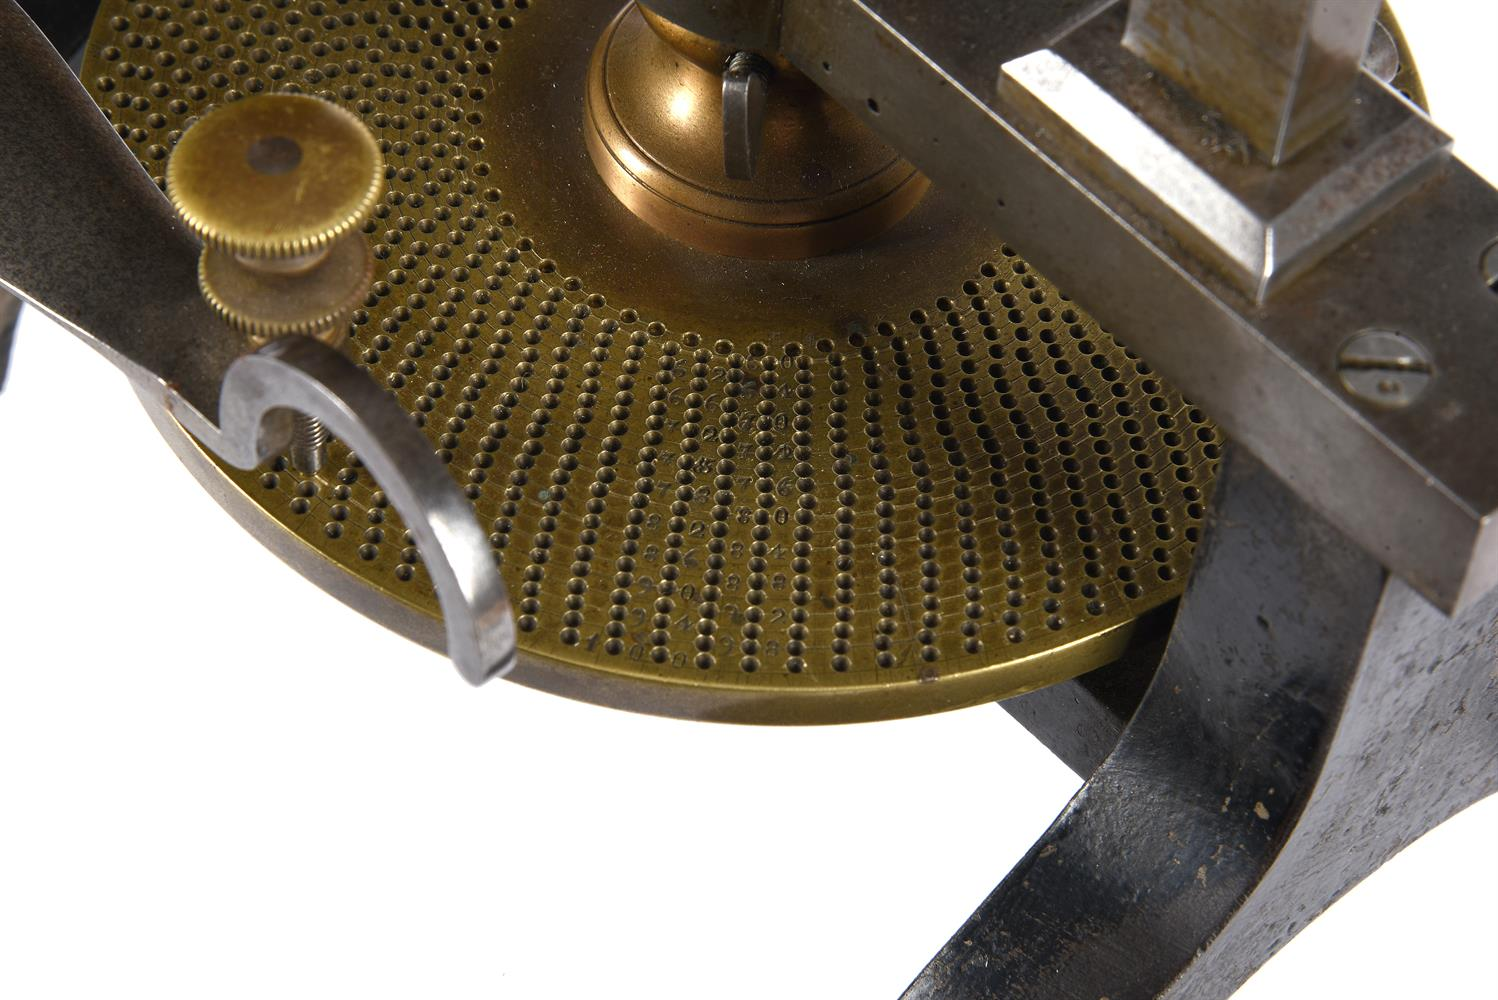 A RARE STEEL-FRAMED CLOCK OR WATCHMAKERS WHEEL CUTTING ENGINE - Image 3 of 3